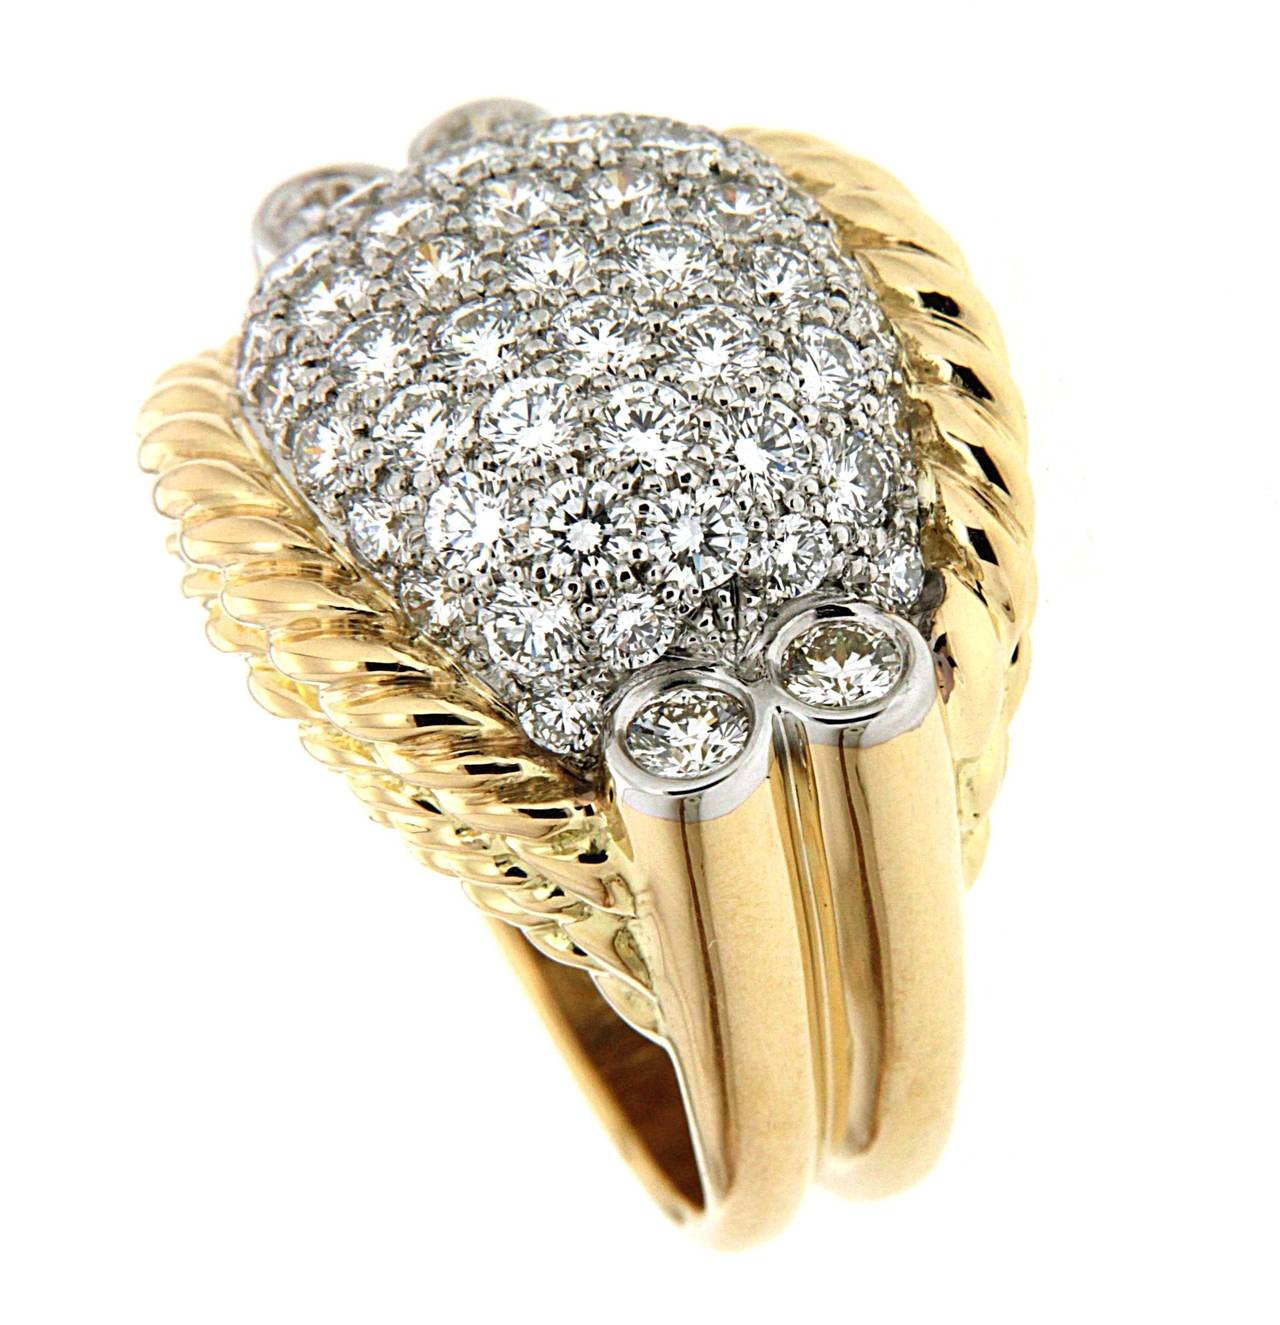 This Triple rope ring is designed with twisted gold wire and pave white diamonds in the center. Four Bezel set Round diamonds on the top of the shanks.This ring is made in 18kt Yellow Gold. 